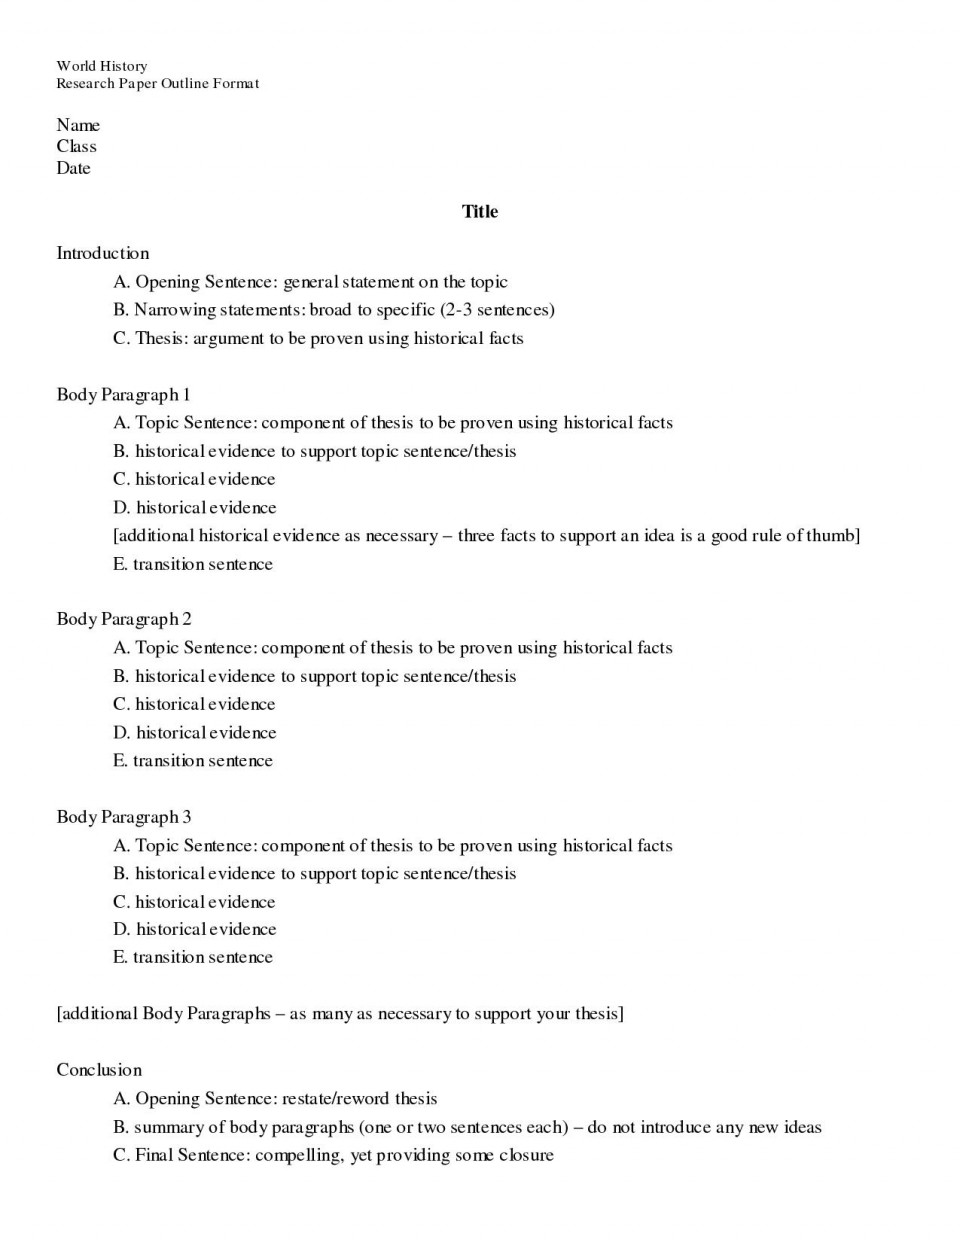 012 Outline Image1 Sample Outlines For Researchs Awful Research Papers Writing Example Examples Of Apa Paper 960